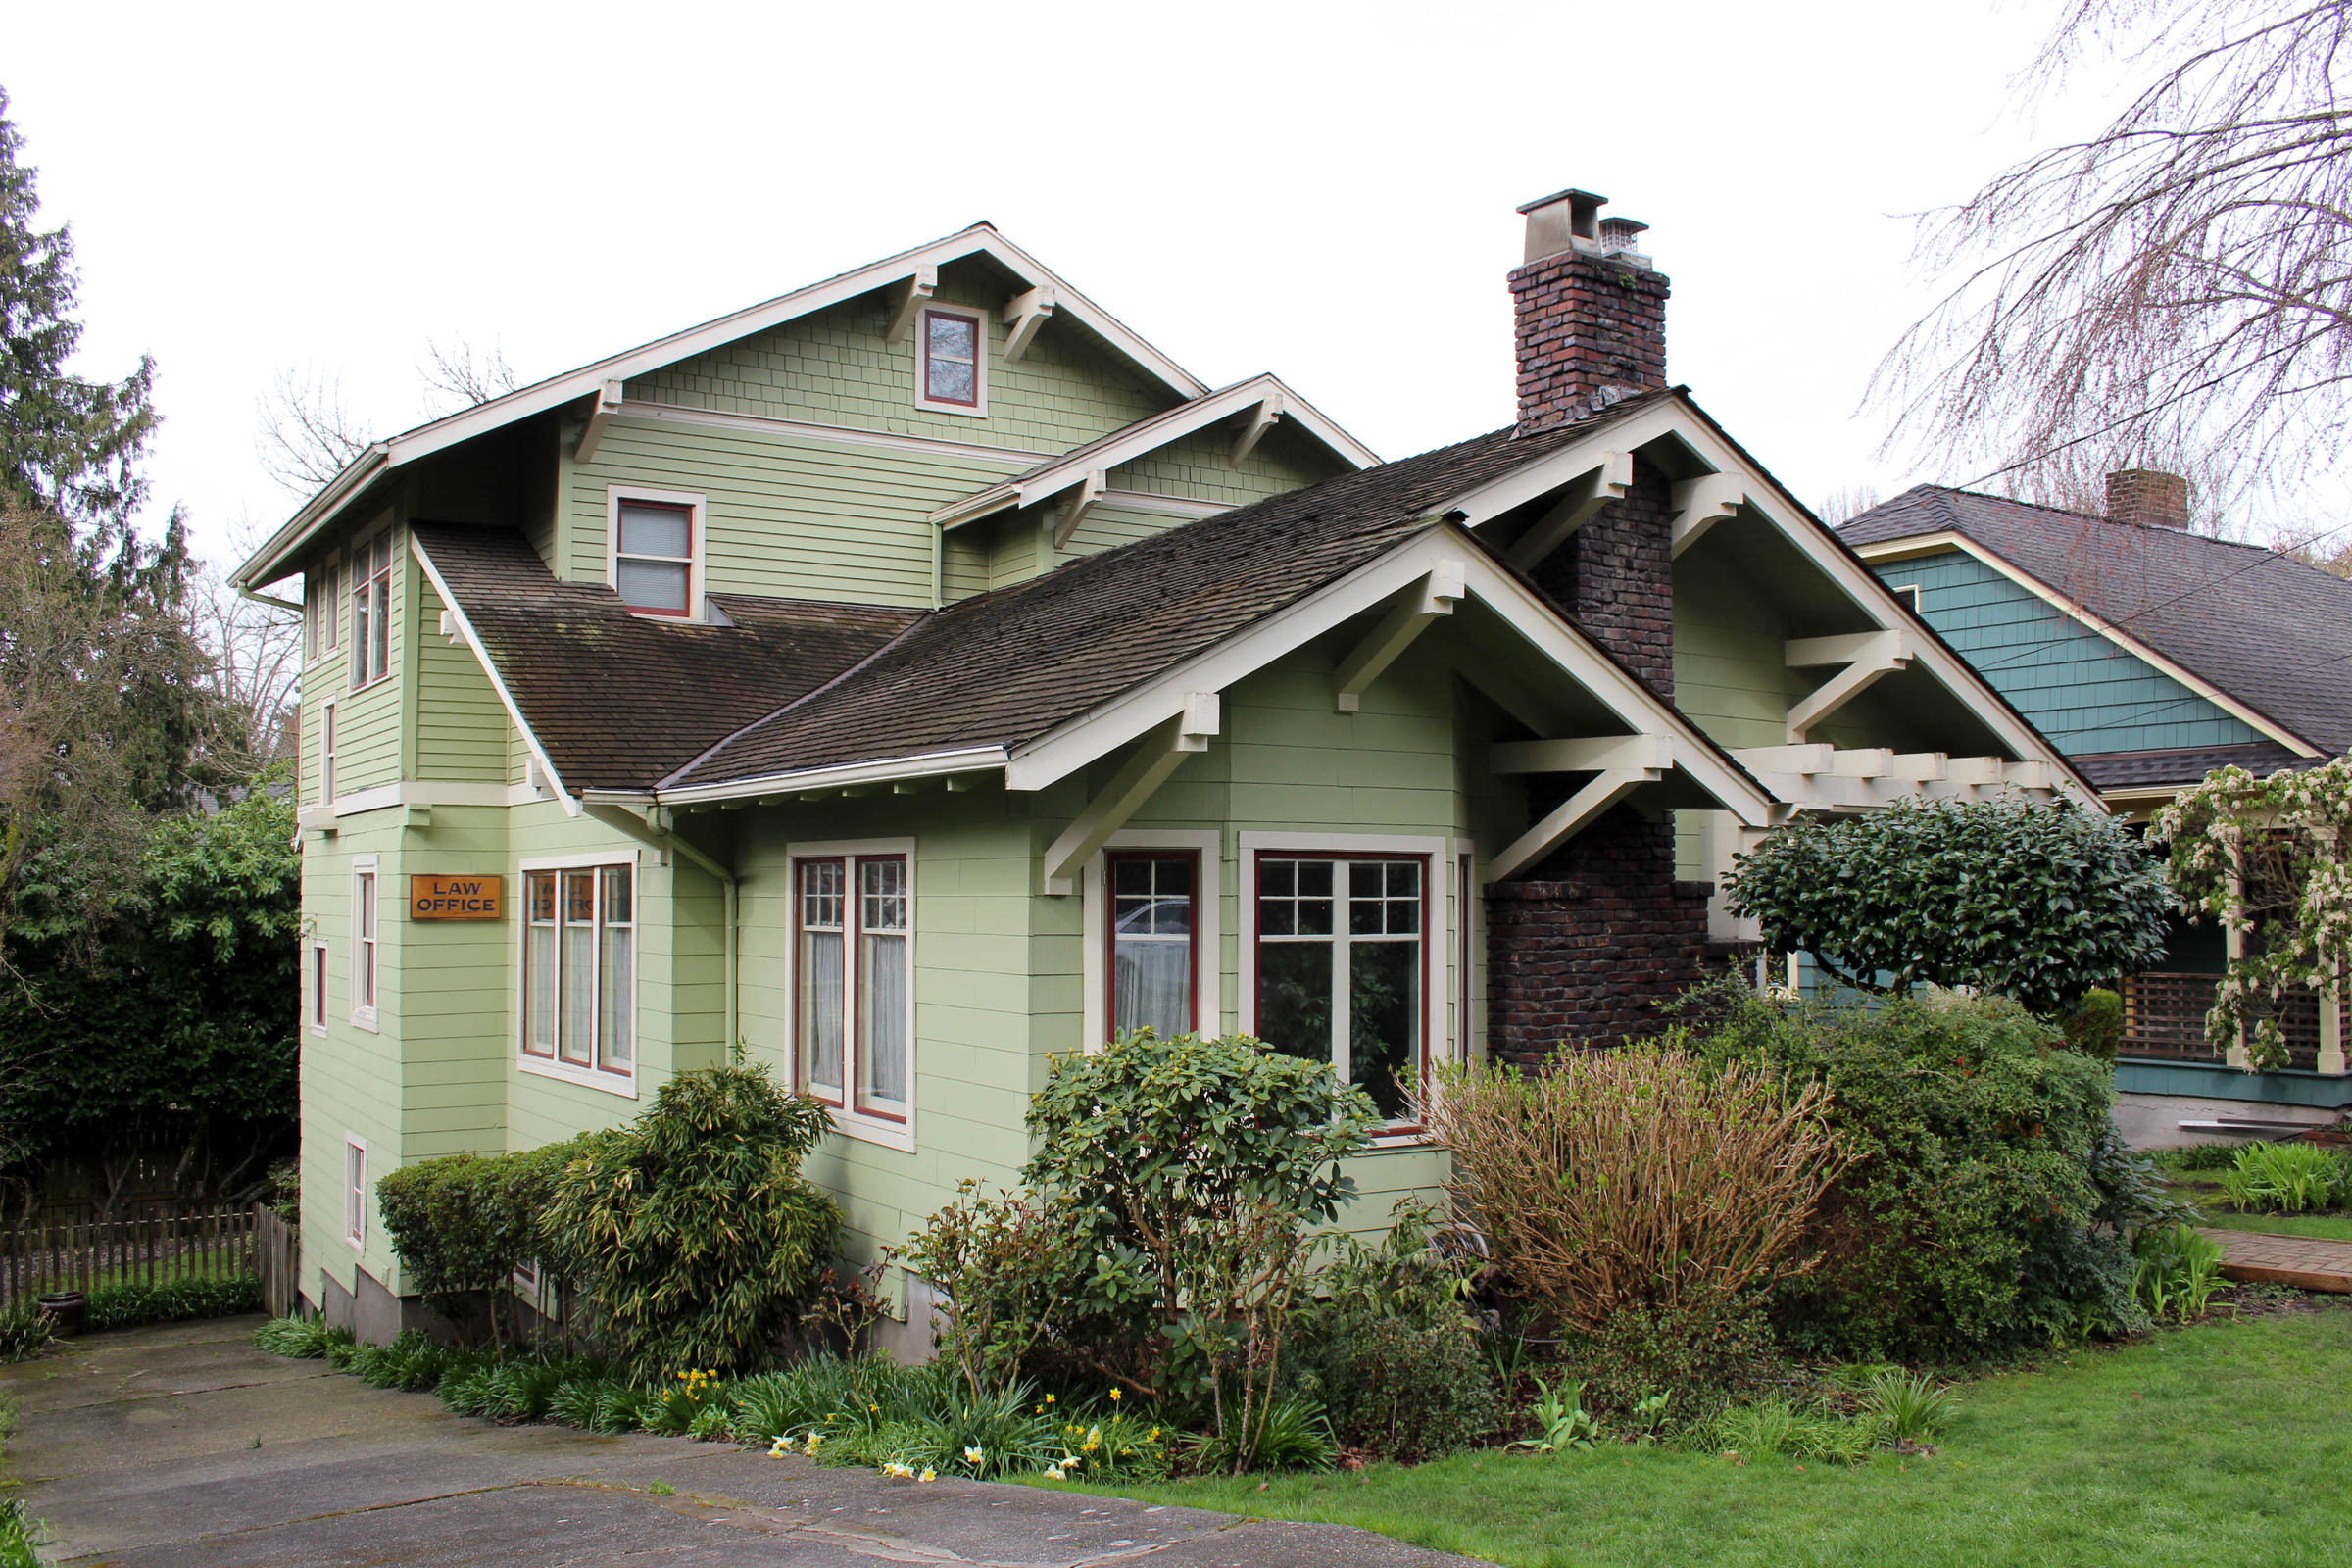 Mission Style House : The story behind seattle s obsession with craftsman homes